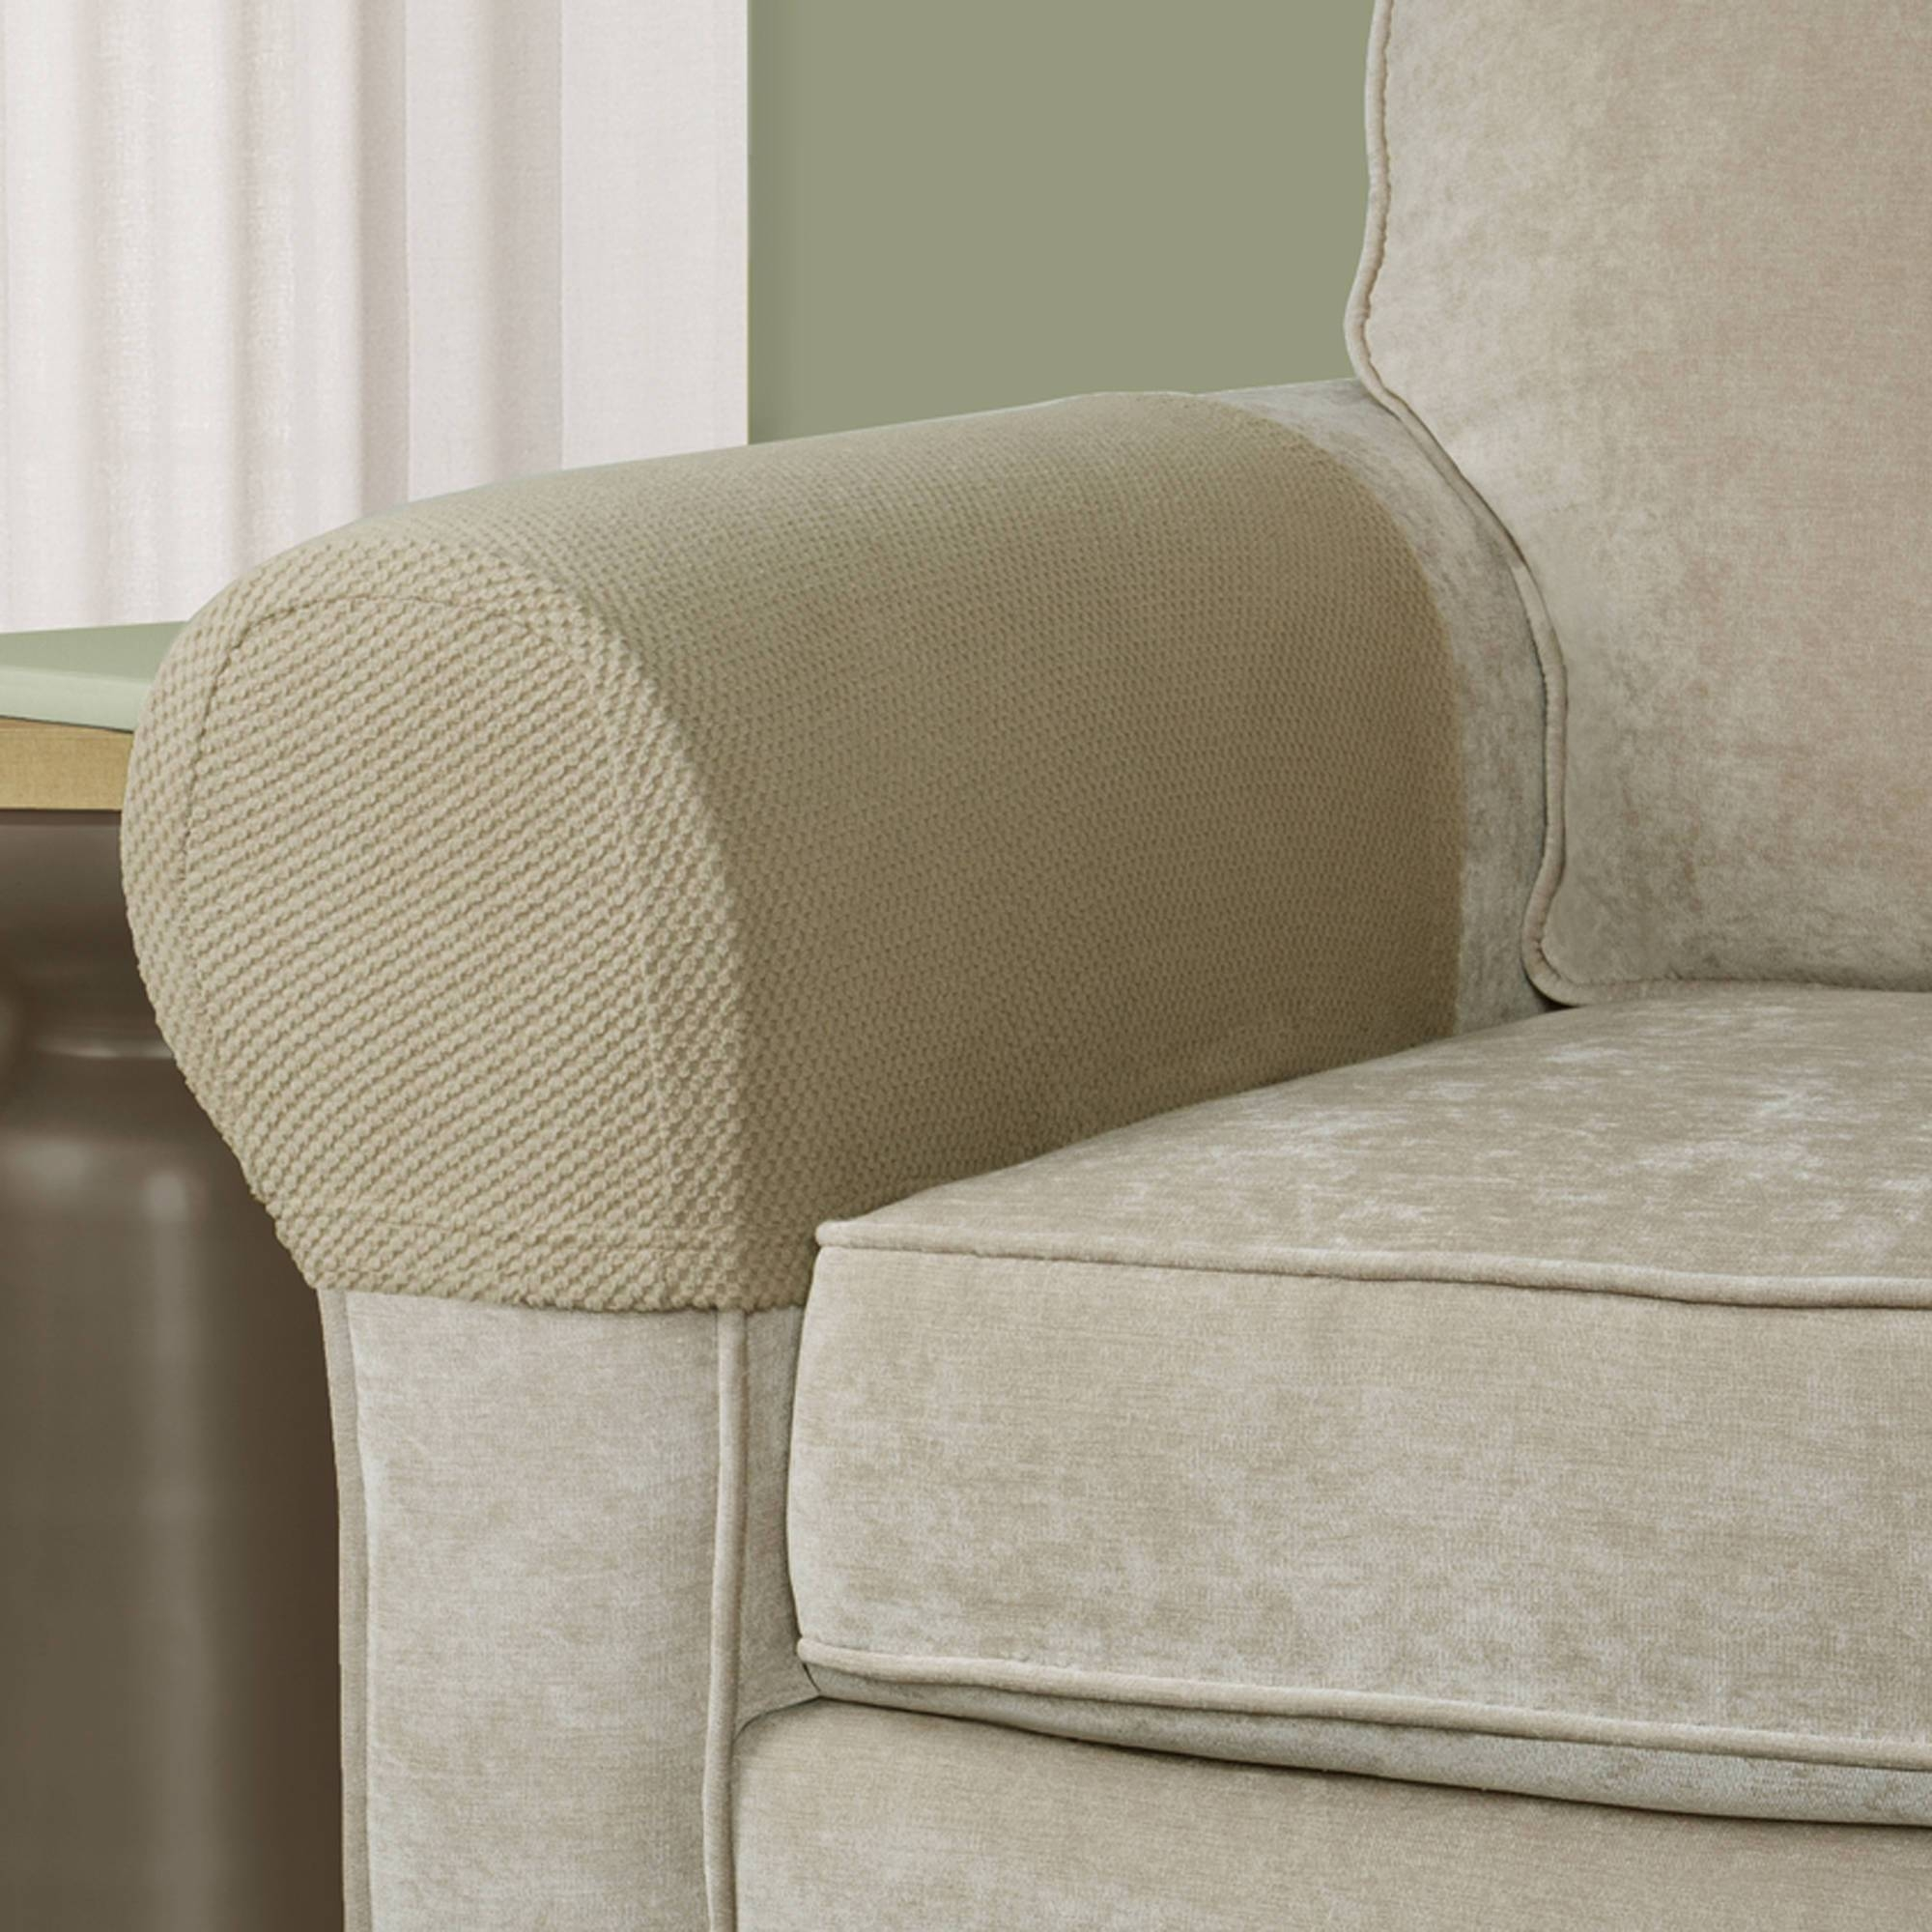 2 Piece White Armrest Covers Stretchy Set Chair Sofa Arm throughout Sofa and Chair Covers (Image 1 of 30)